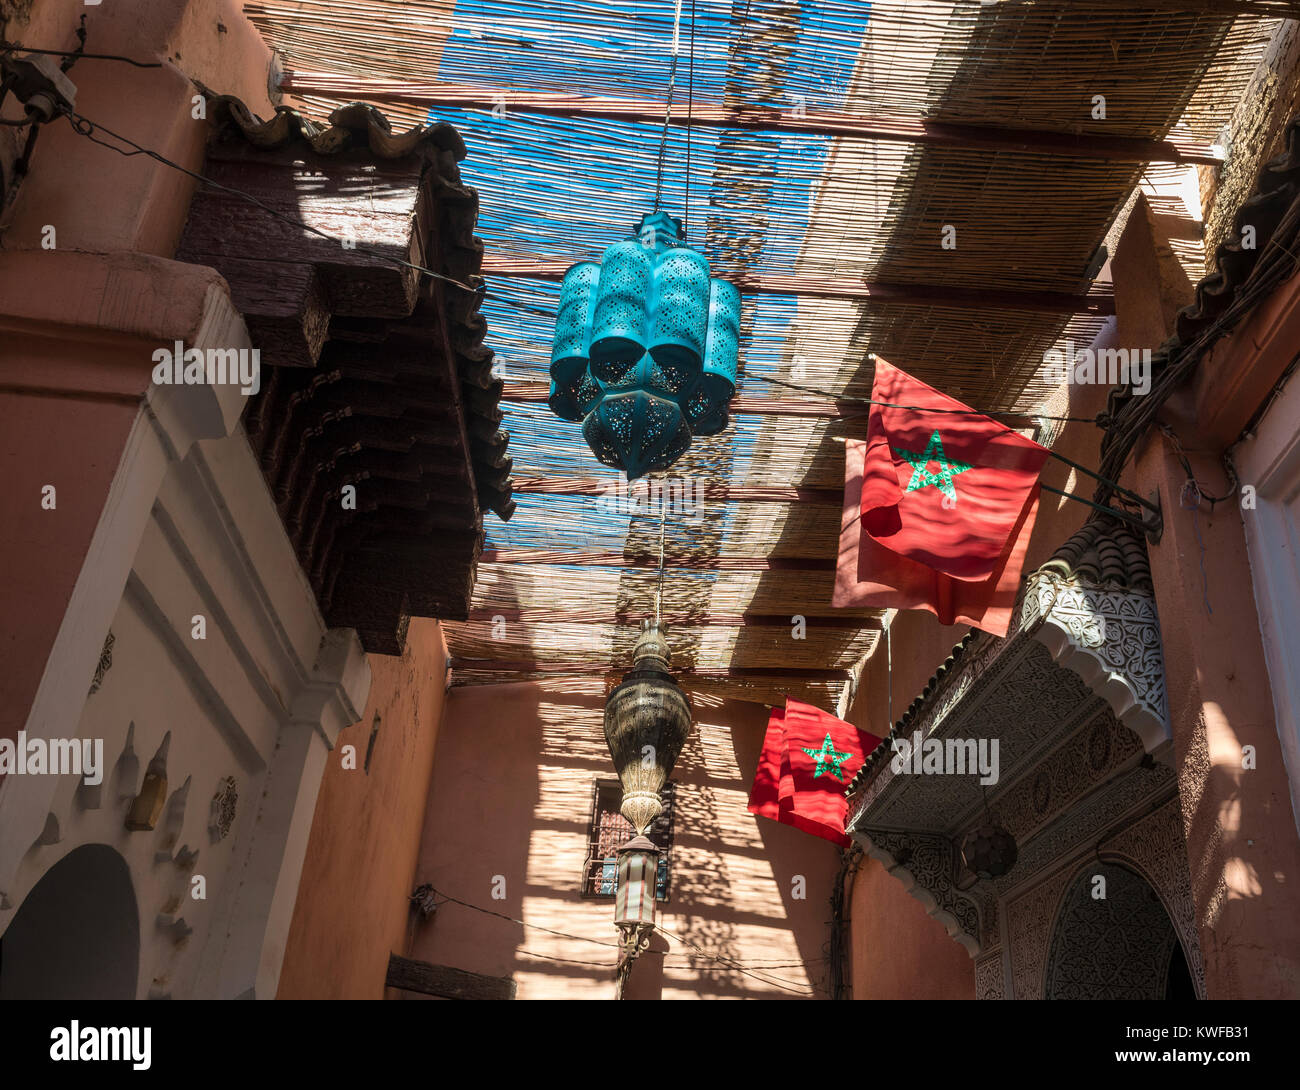 Looking up, lamps, medina. - Stock Image